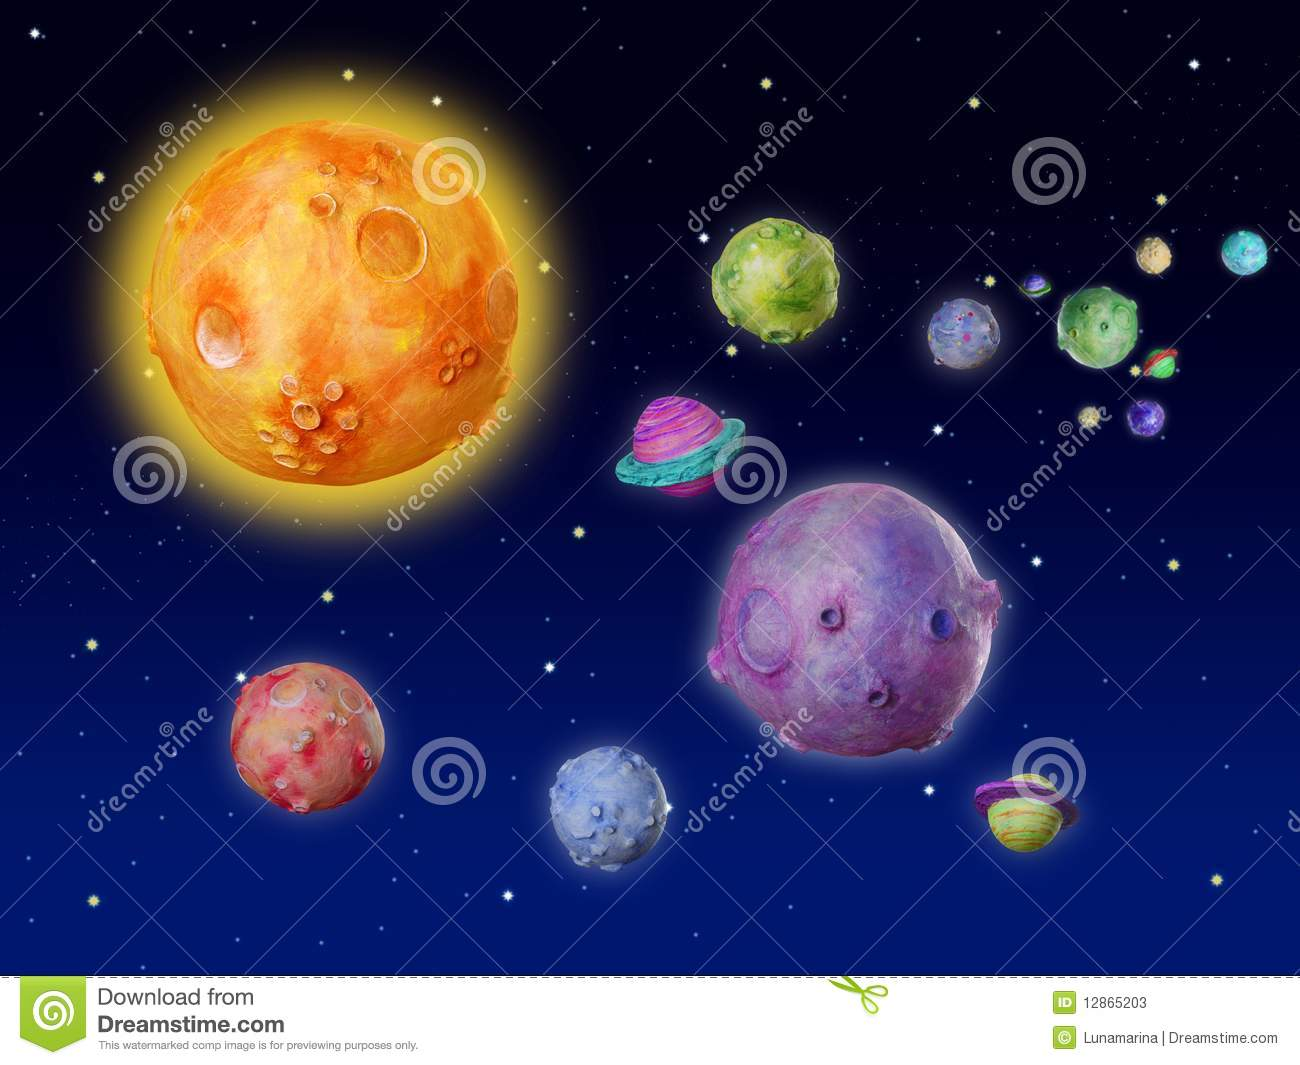 Space planets fantasy handmade  Universe Pictures With All Planets